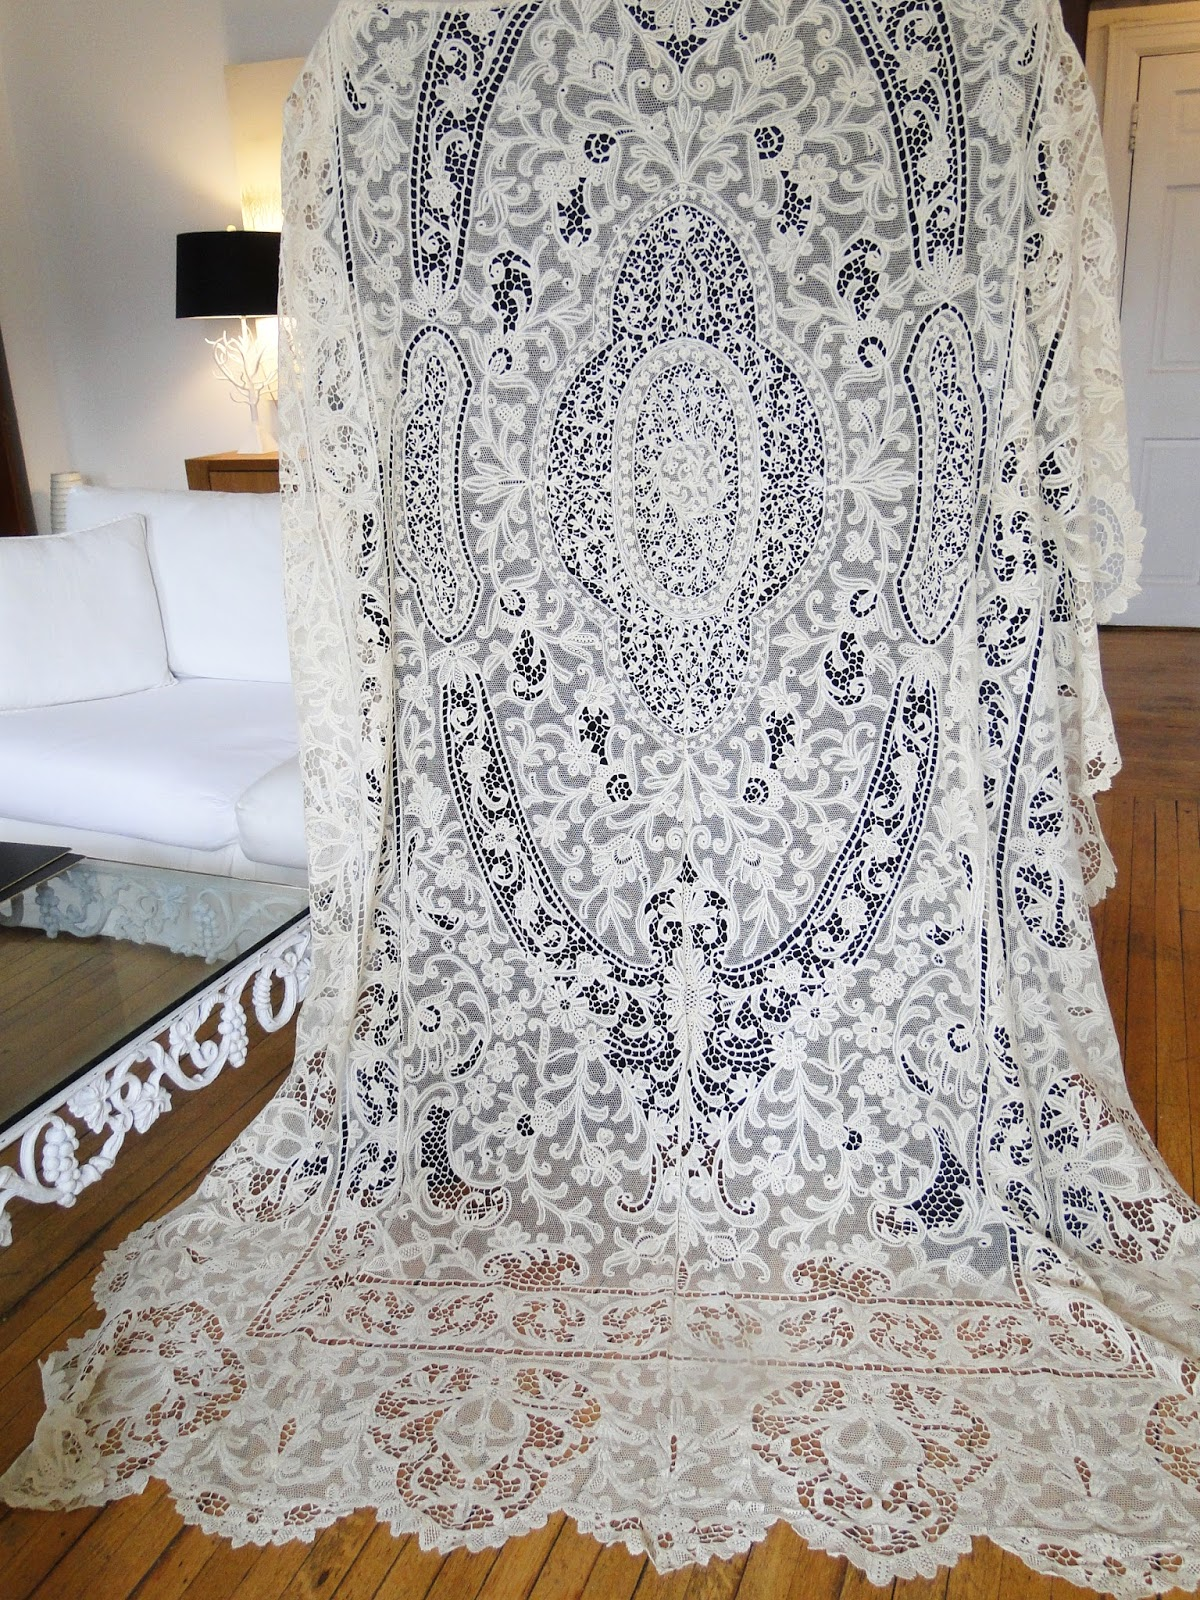 LOVELY AND ORNATE ITALIAN NEEDLE AND BOBBIN LACE TABLECLOTH. Quite A Grand  Design On This Lovely Large Ornate Tablecloth Measuring Apprx.